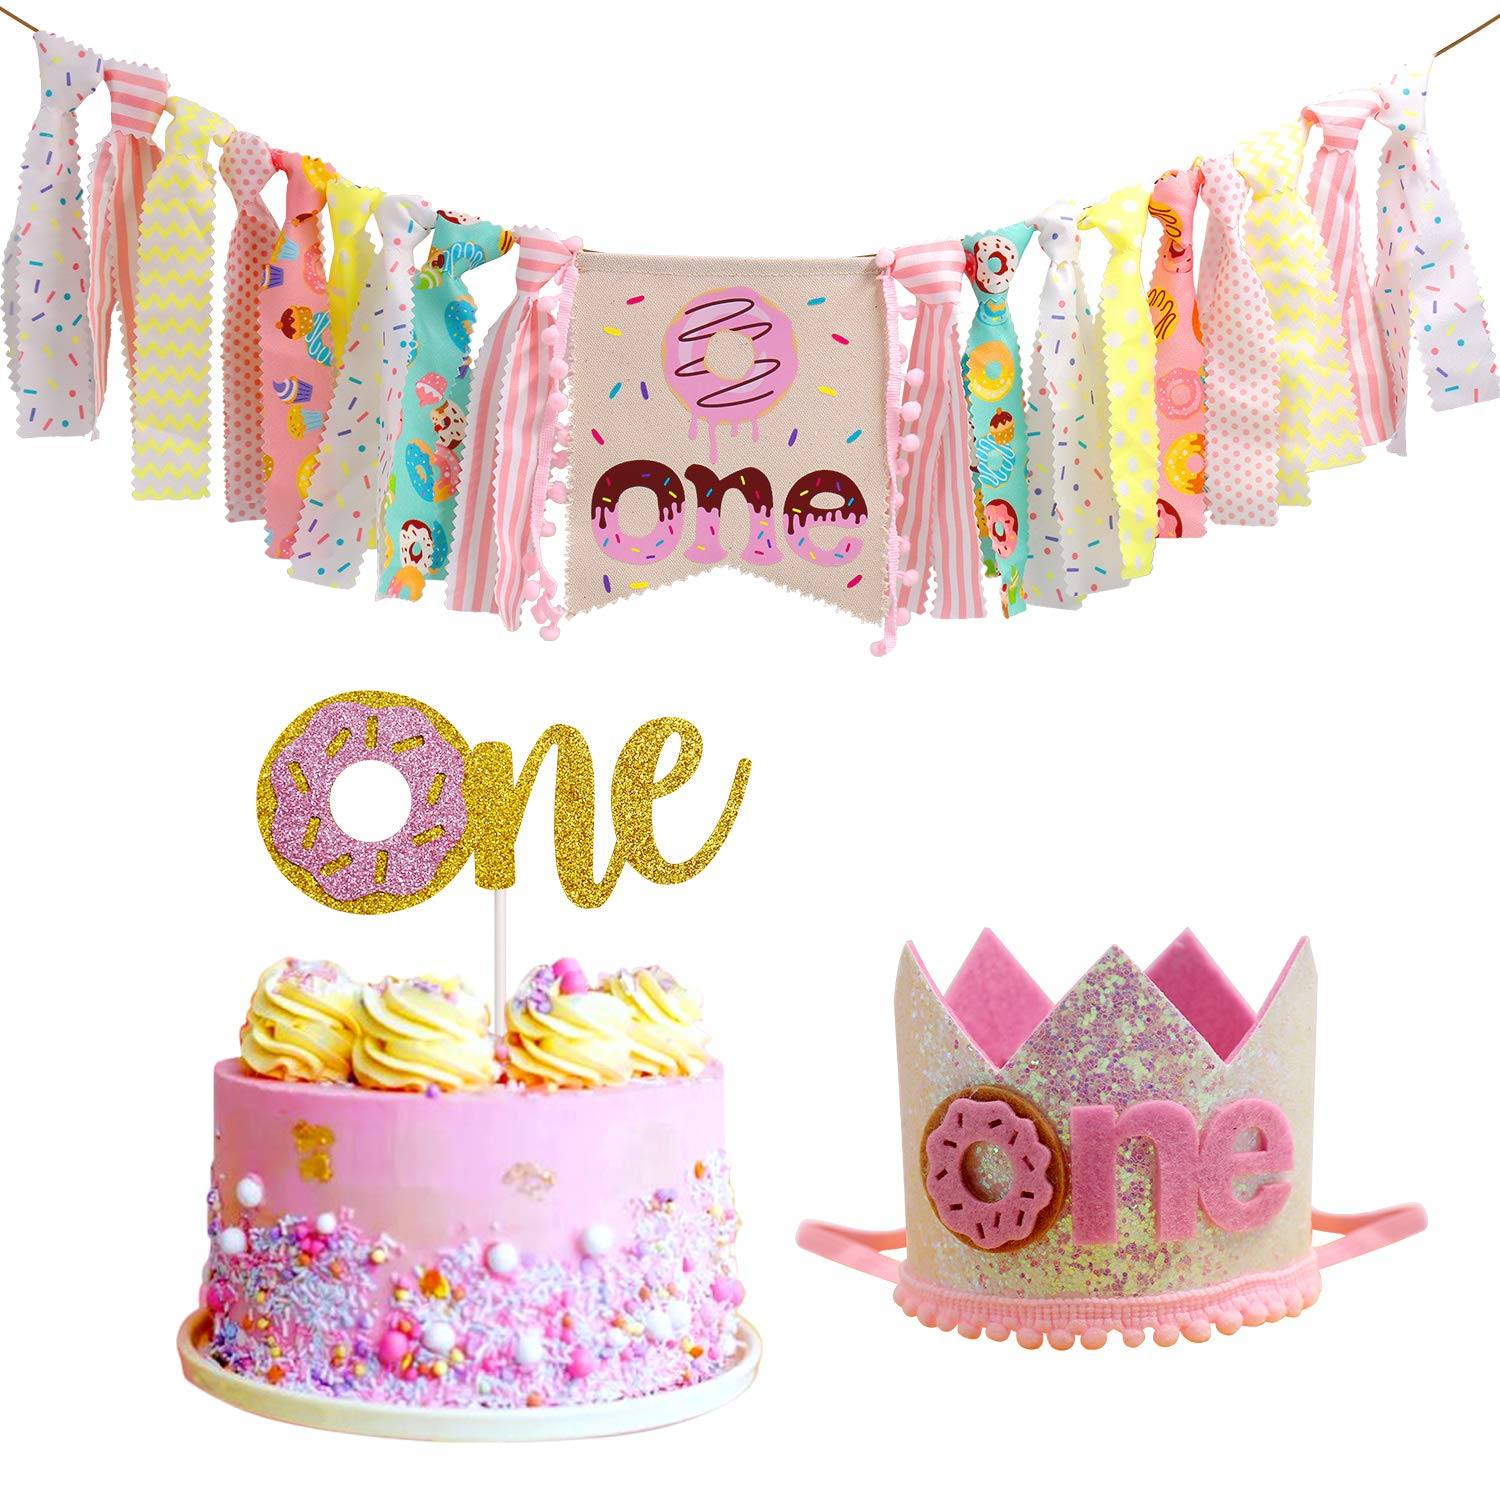 Donut High Chair Banner for 1st Birthday Party Decorations - Photo Booth Props, Birthday Gifts and Souvenir for First Baby Girl by Vansolinne (Image #1)